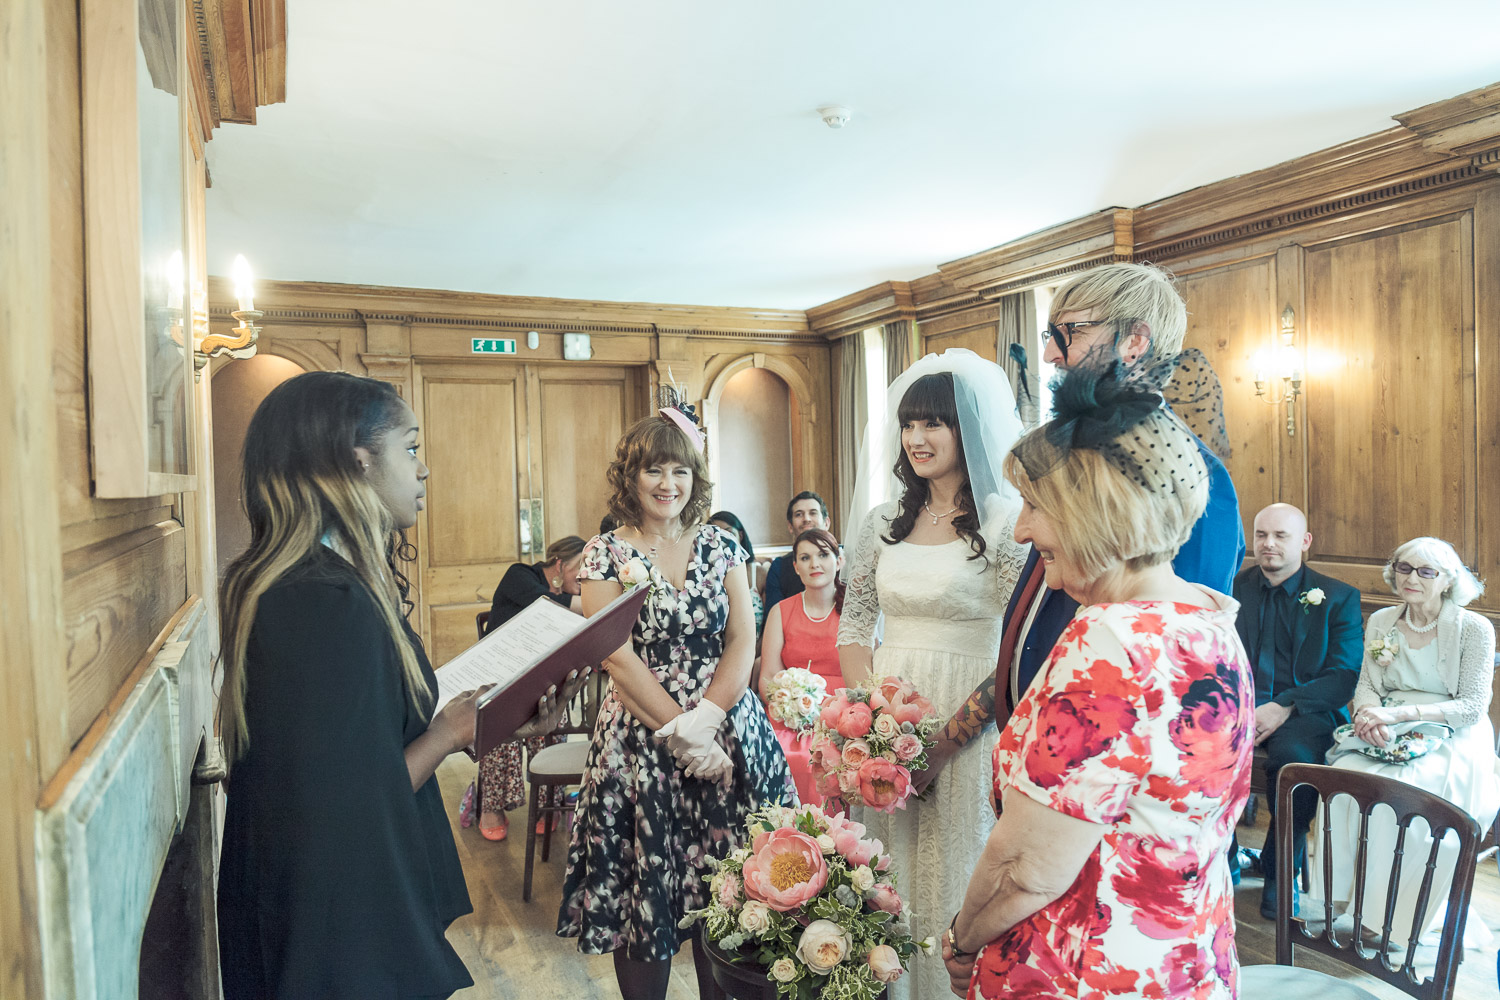 burgh-house-hampstead-north-london-wedding-0062.jpg